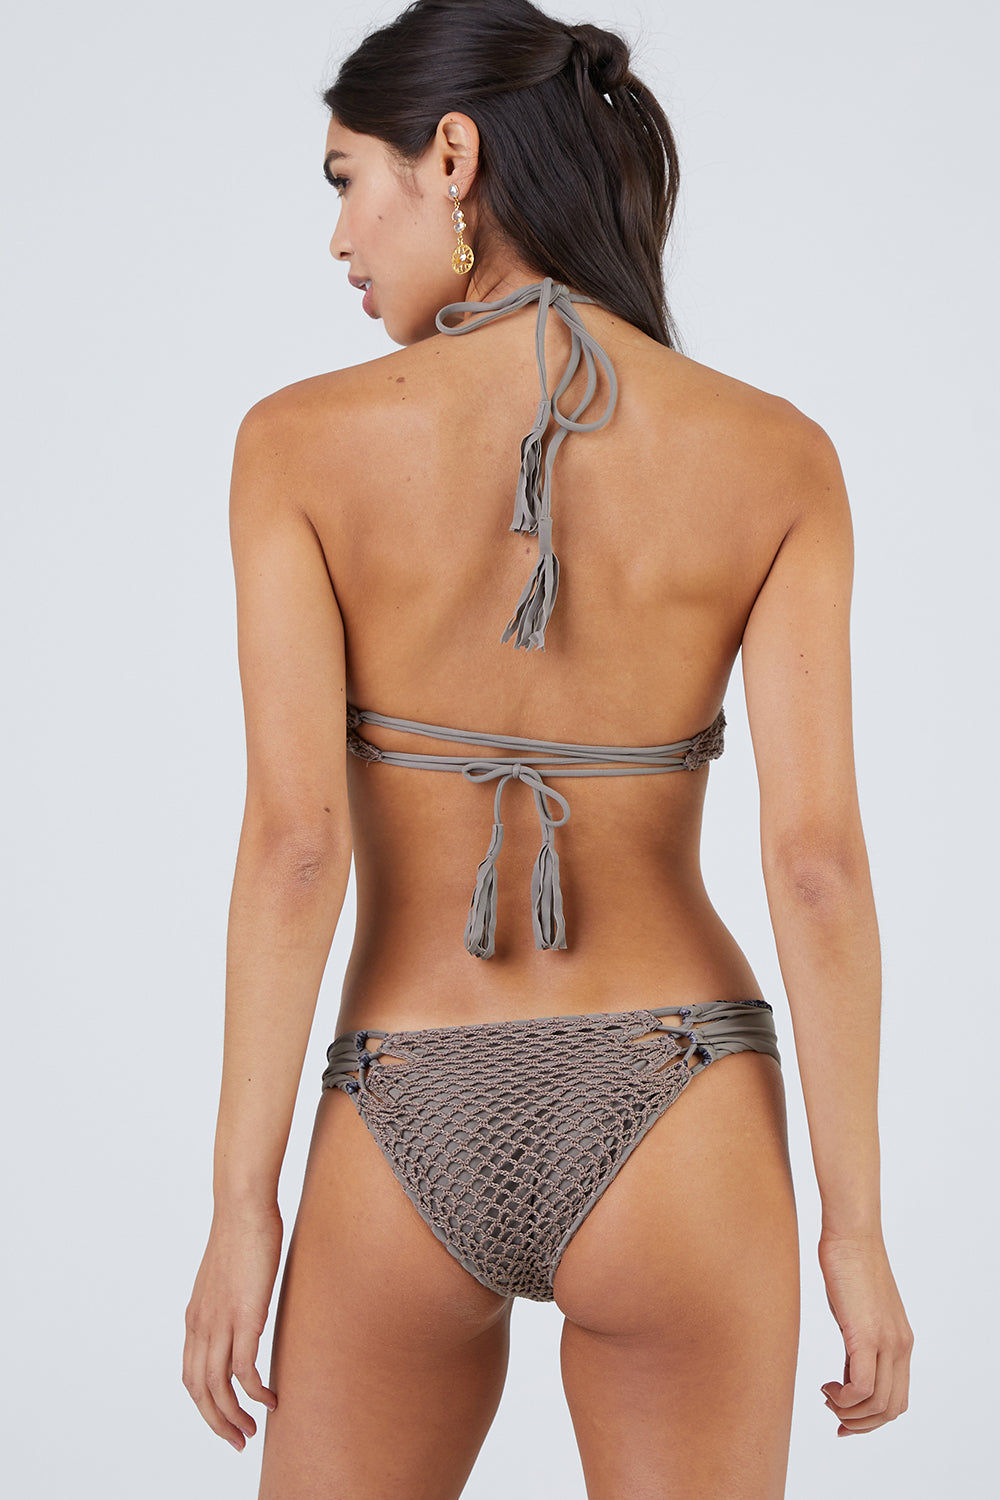 ACACIA Papio Cheeky Crochet Bikini Bottom - Cement Bikini Bottom | Cement| Acacia Papio Moderate Bottom - Cement Back View   Smooth Wide Straps Lacing Side Detail Crochet Overlay Front & Back  Cheeky - Moderate Coverage